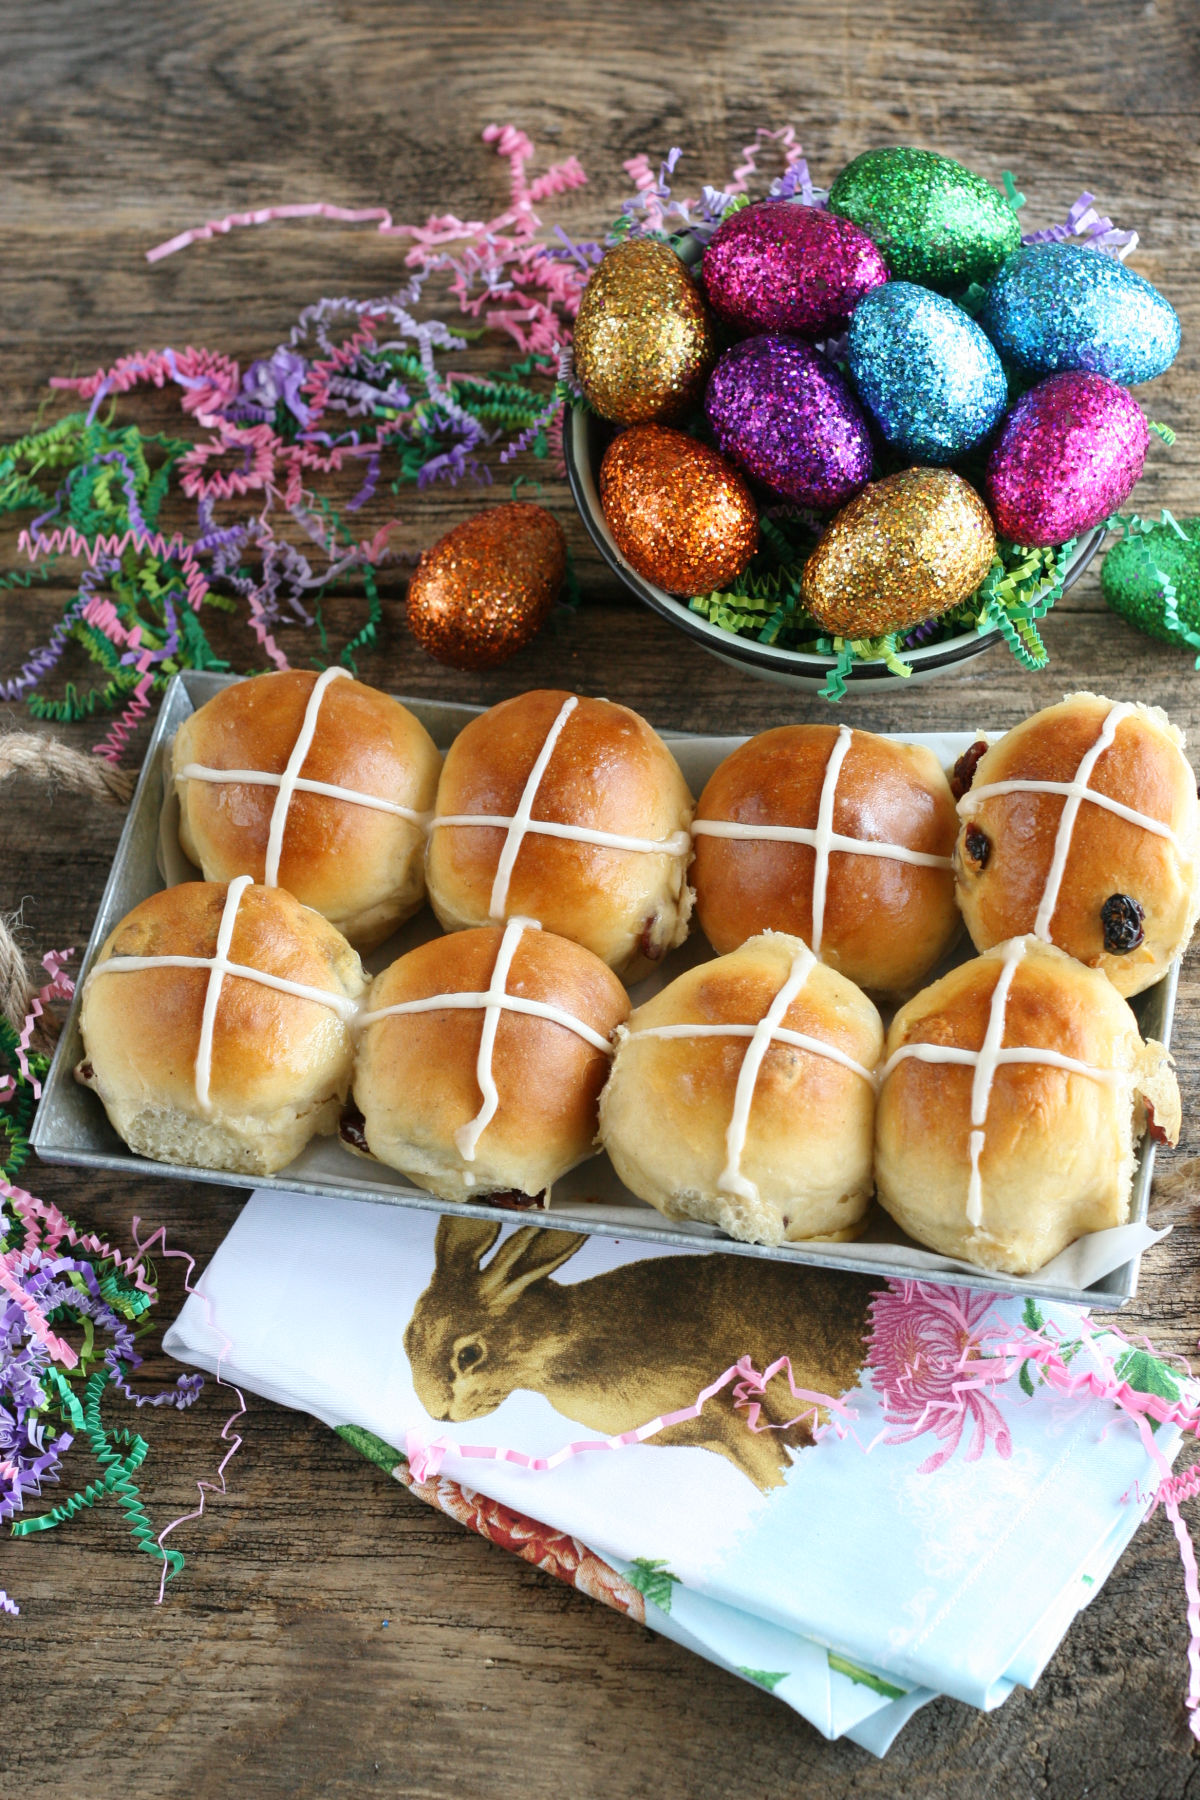 Hot Cross Buns with craisins lined up in a metal serving tray, colorful sparkled faux eggs in bowl.